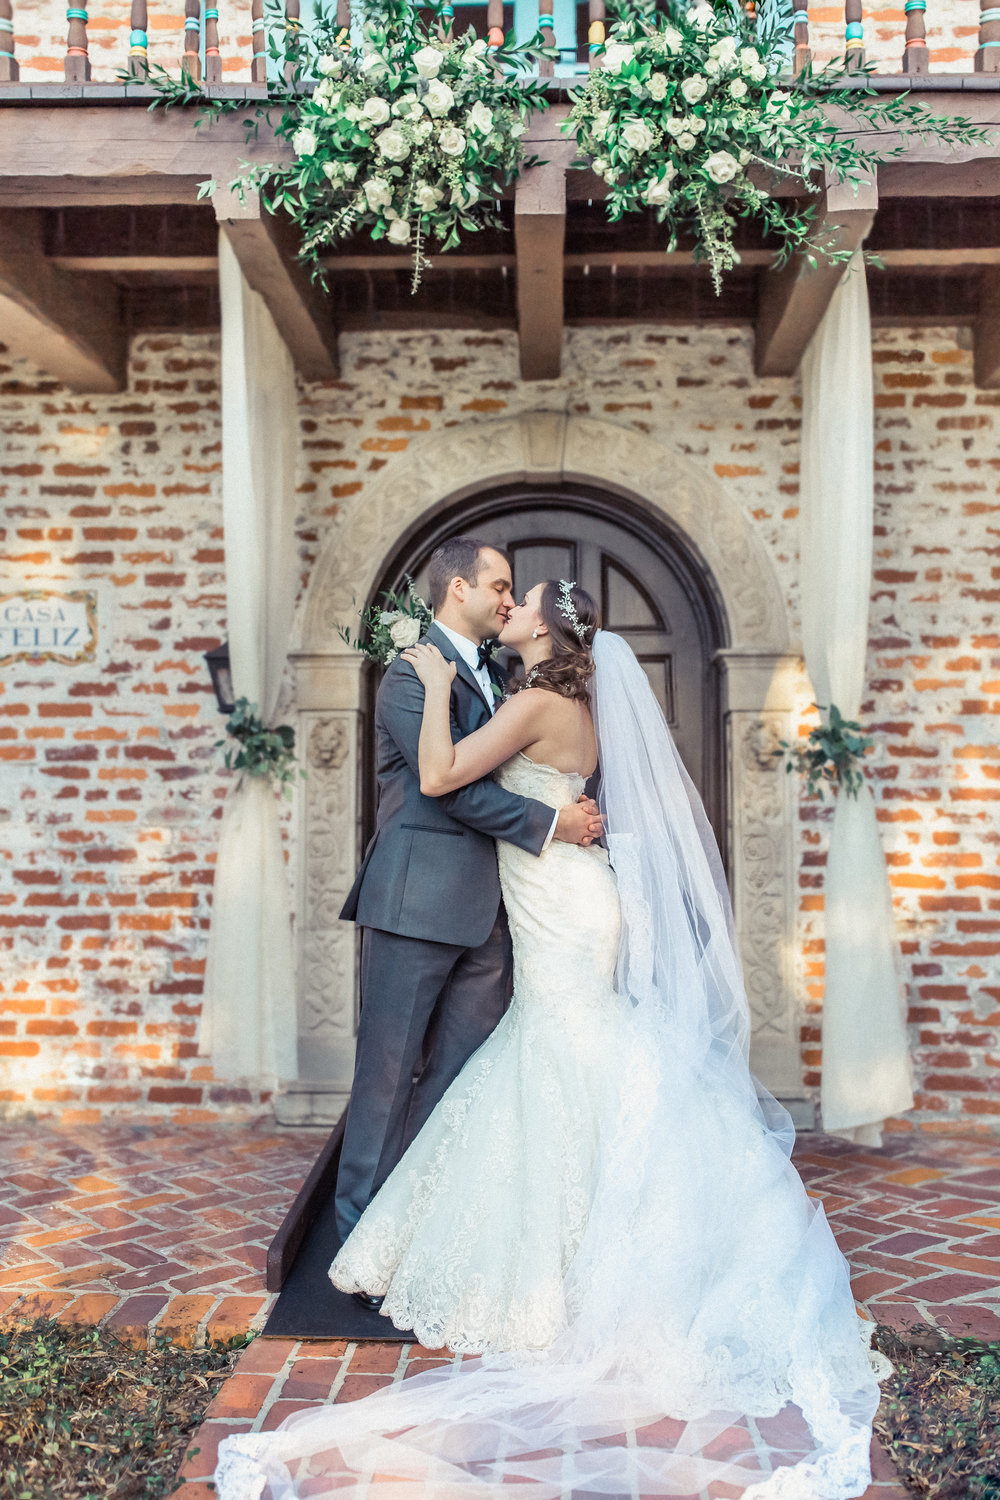 2. Bride + Groom- Casa Feliz Winter Park Wedding- Erica+Aaron 101.jpg